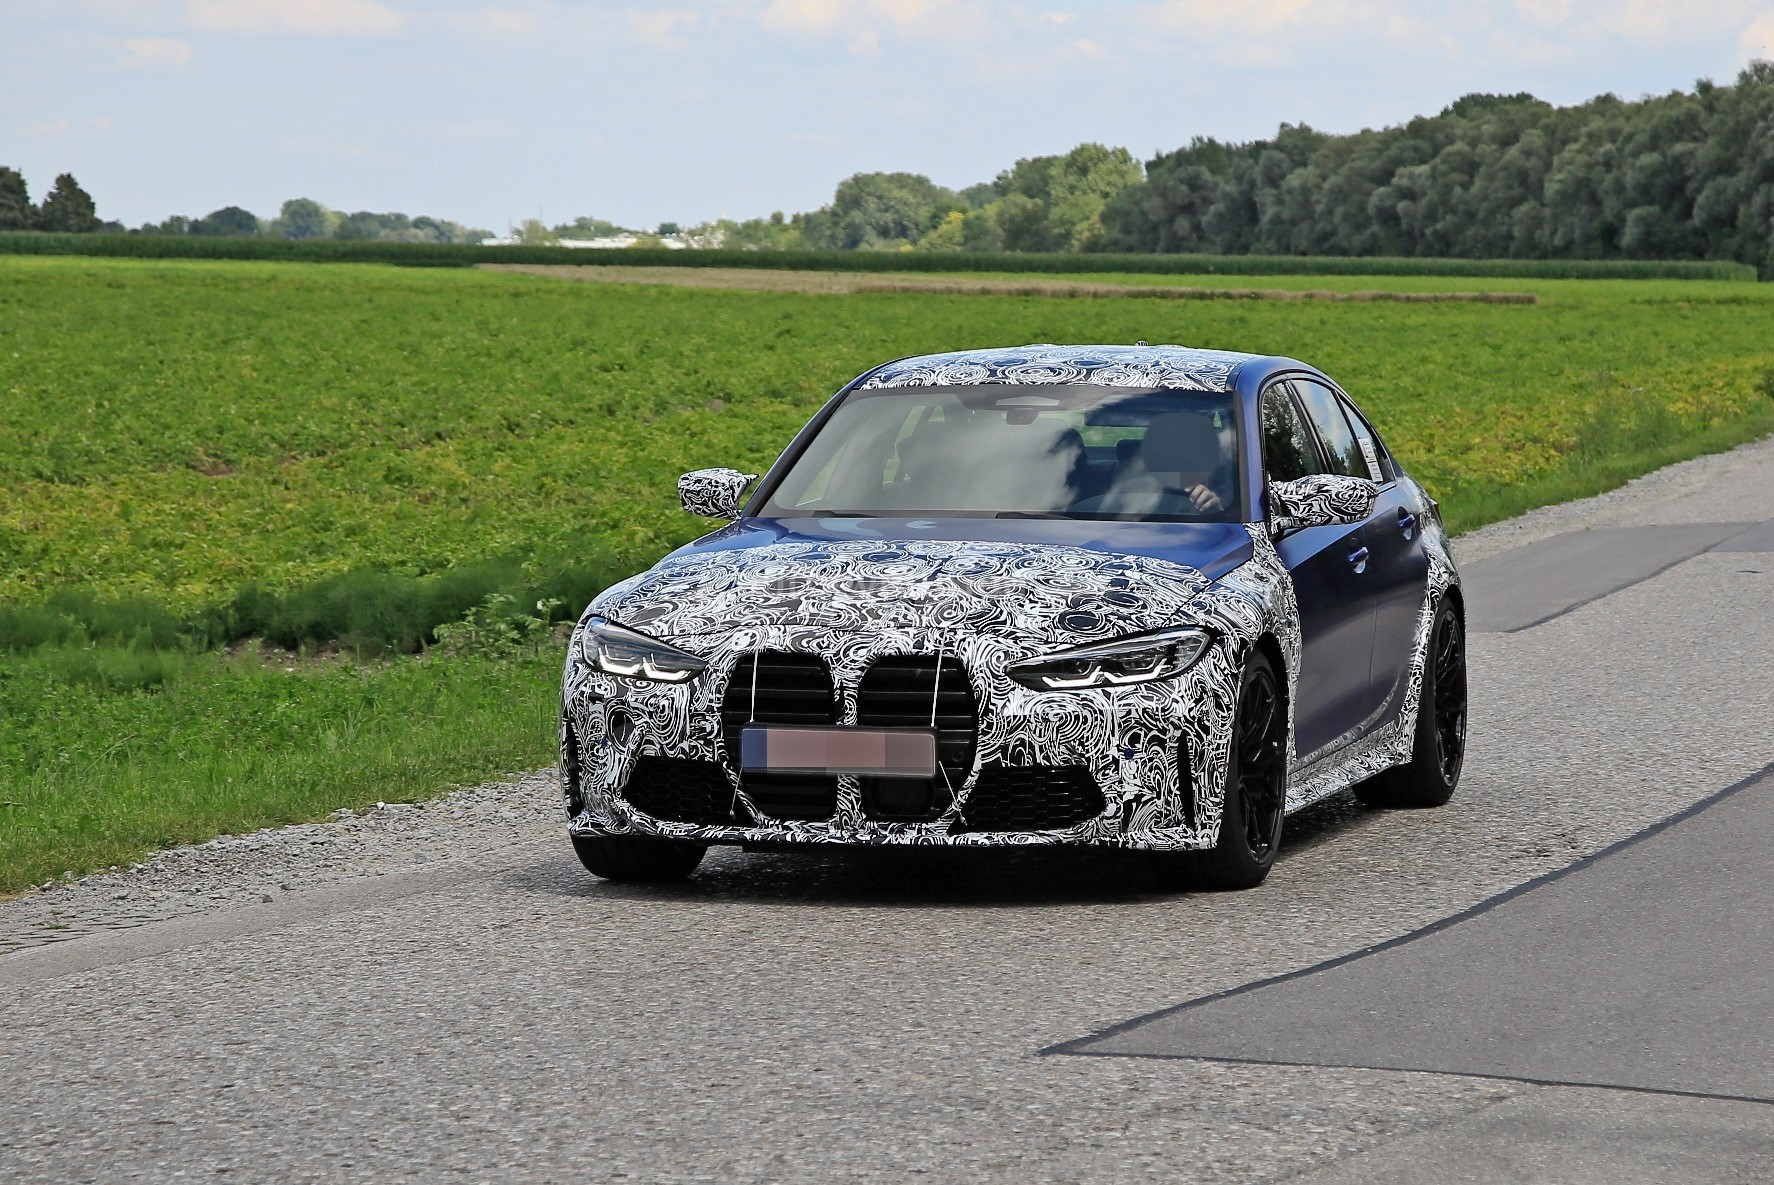 g80-bmw-m3-shows-ginormous-kidney-grille-in-new-spy-phots_1